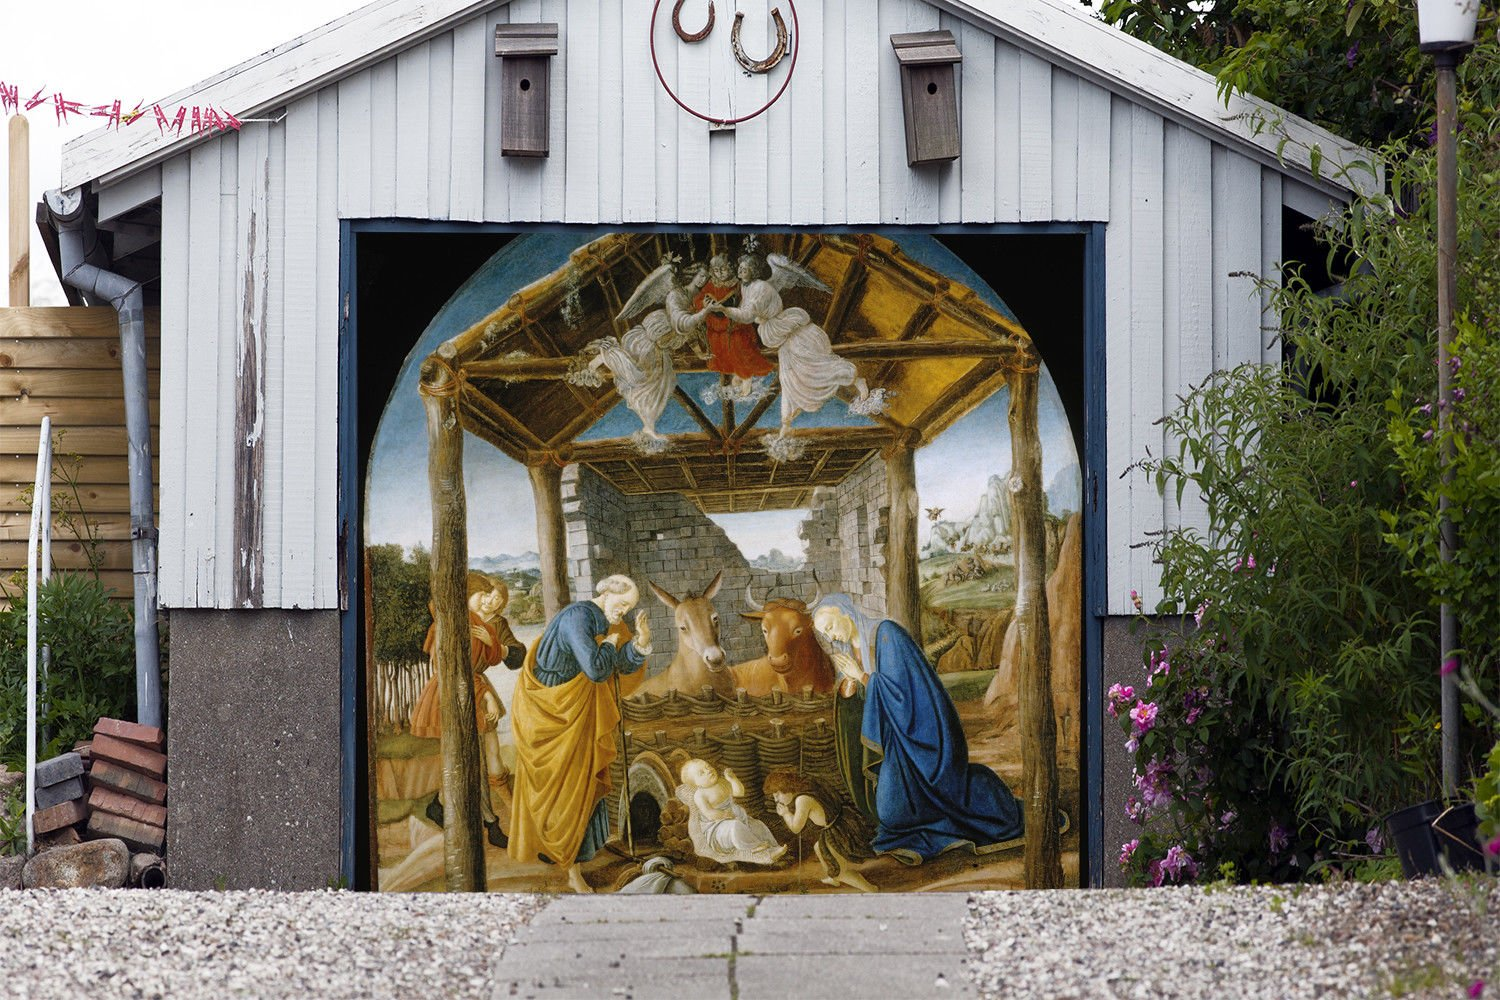 Single Garage Door Murals Nativity Scene Garage Door Banner Covers Billboard House Outdoor Christmas Holy Night Garage Decor Full Color Decor 3D Effect Print Banner Size 83 x 89 inches DAV203